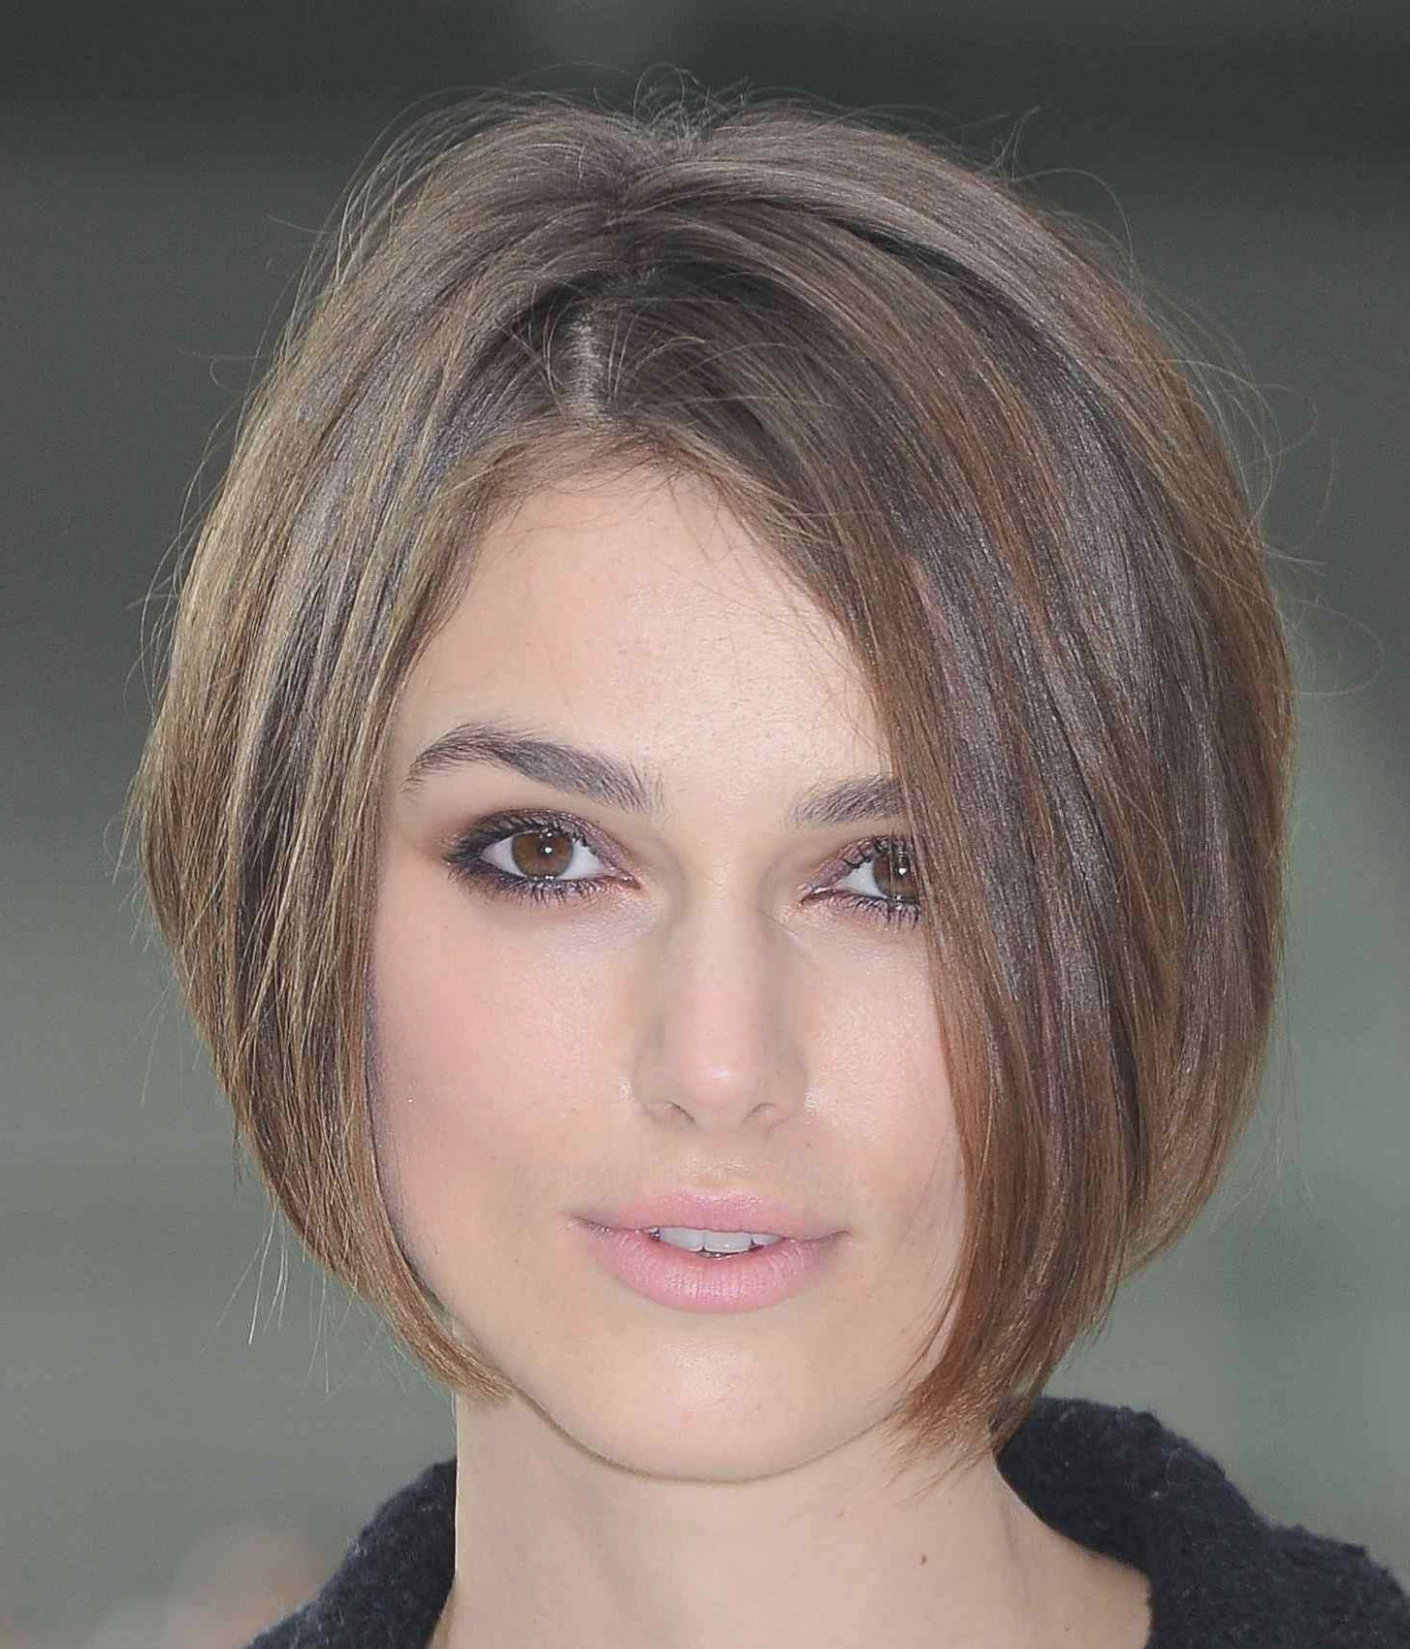 20 Propelling Short Haircuts: A Benchmark Createdkeira Knightley | Pertaining To Keira Knightley Short Haircuts (View 10 of 25)